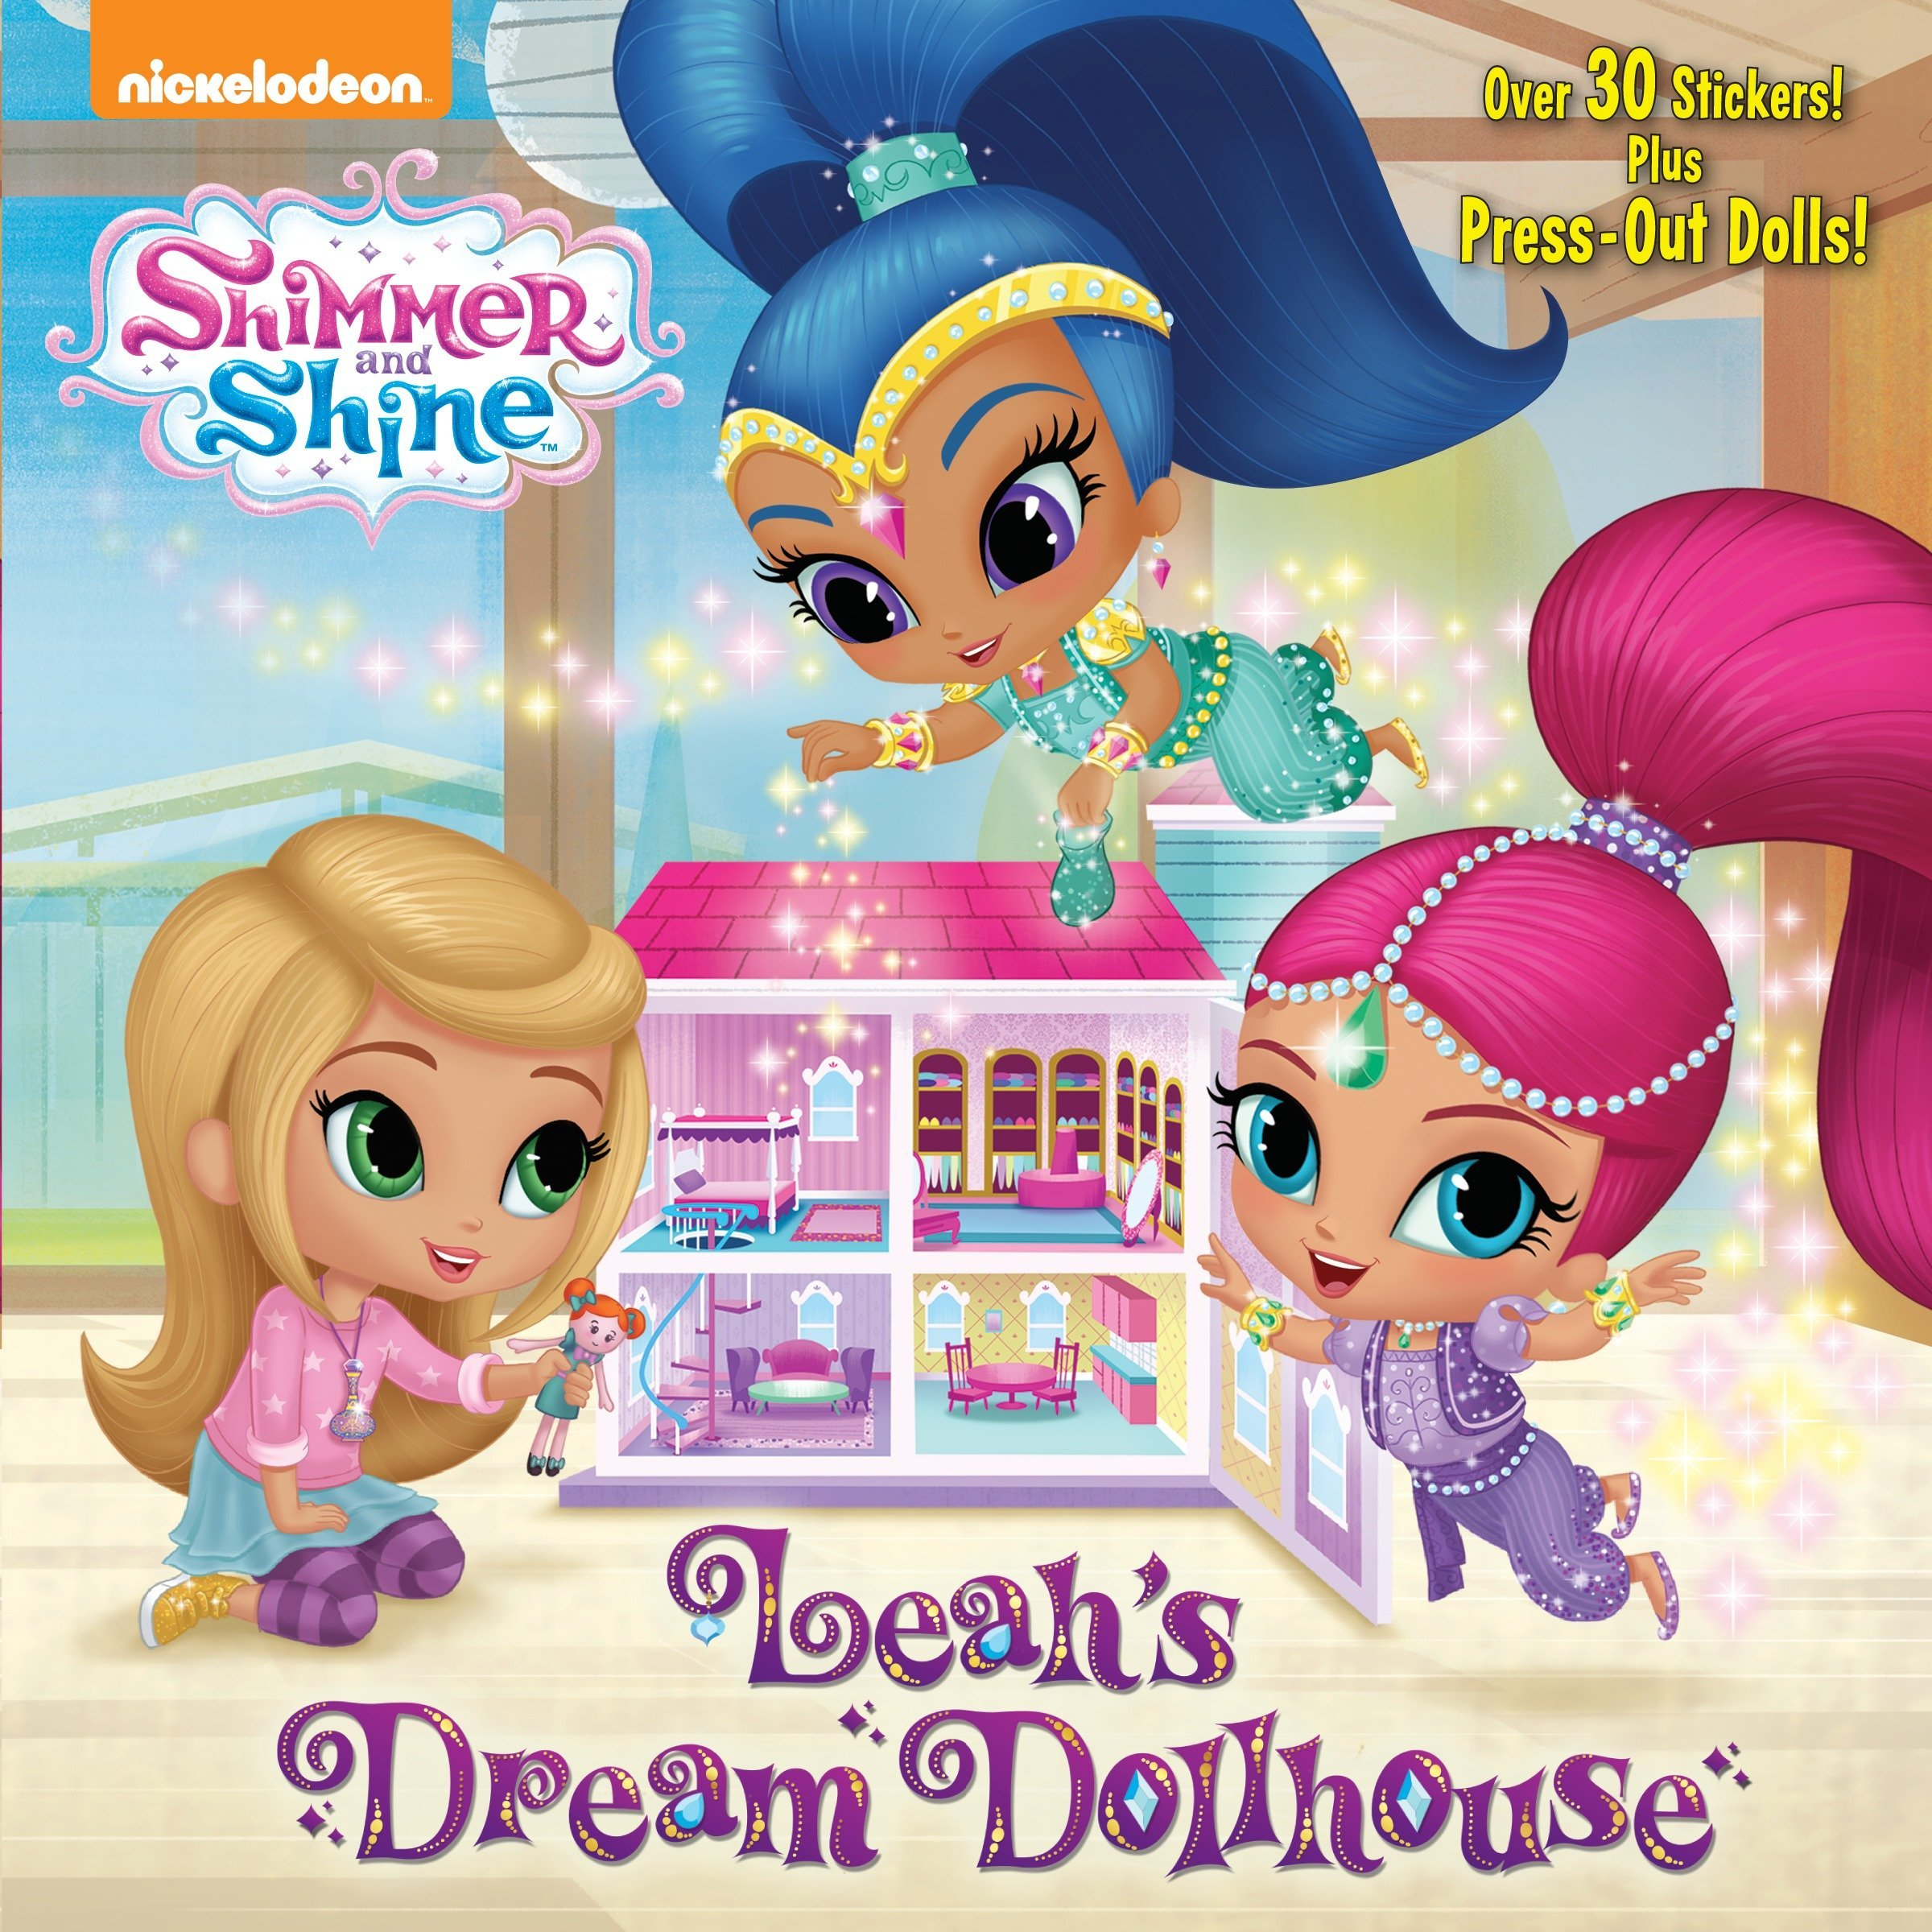 Leah S Dream Dollhouse Shimmer And Shine Pictureback R Mary